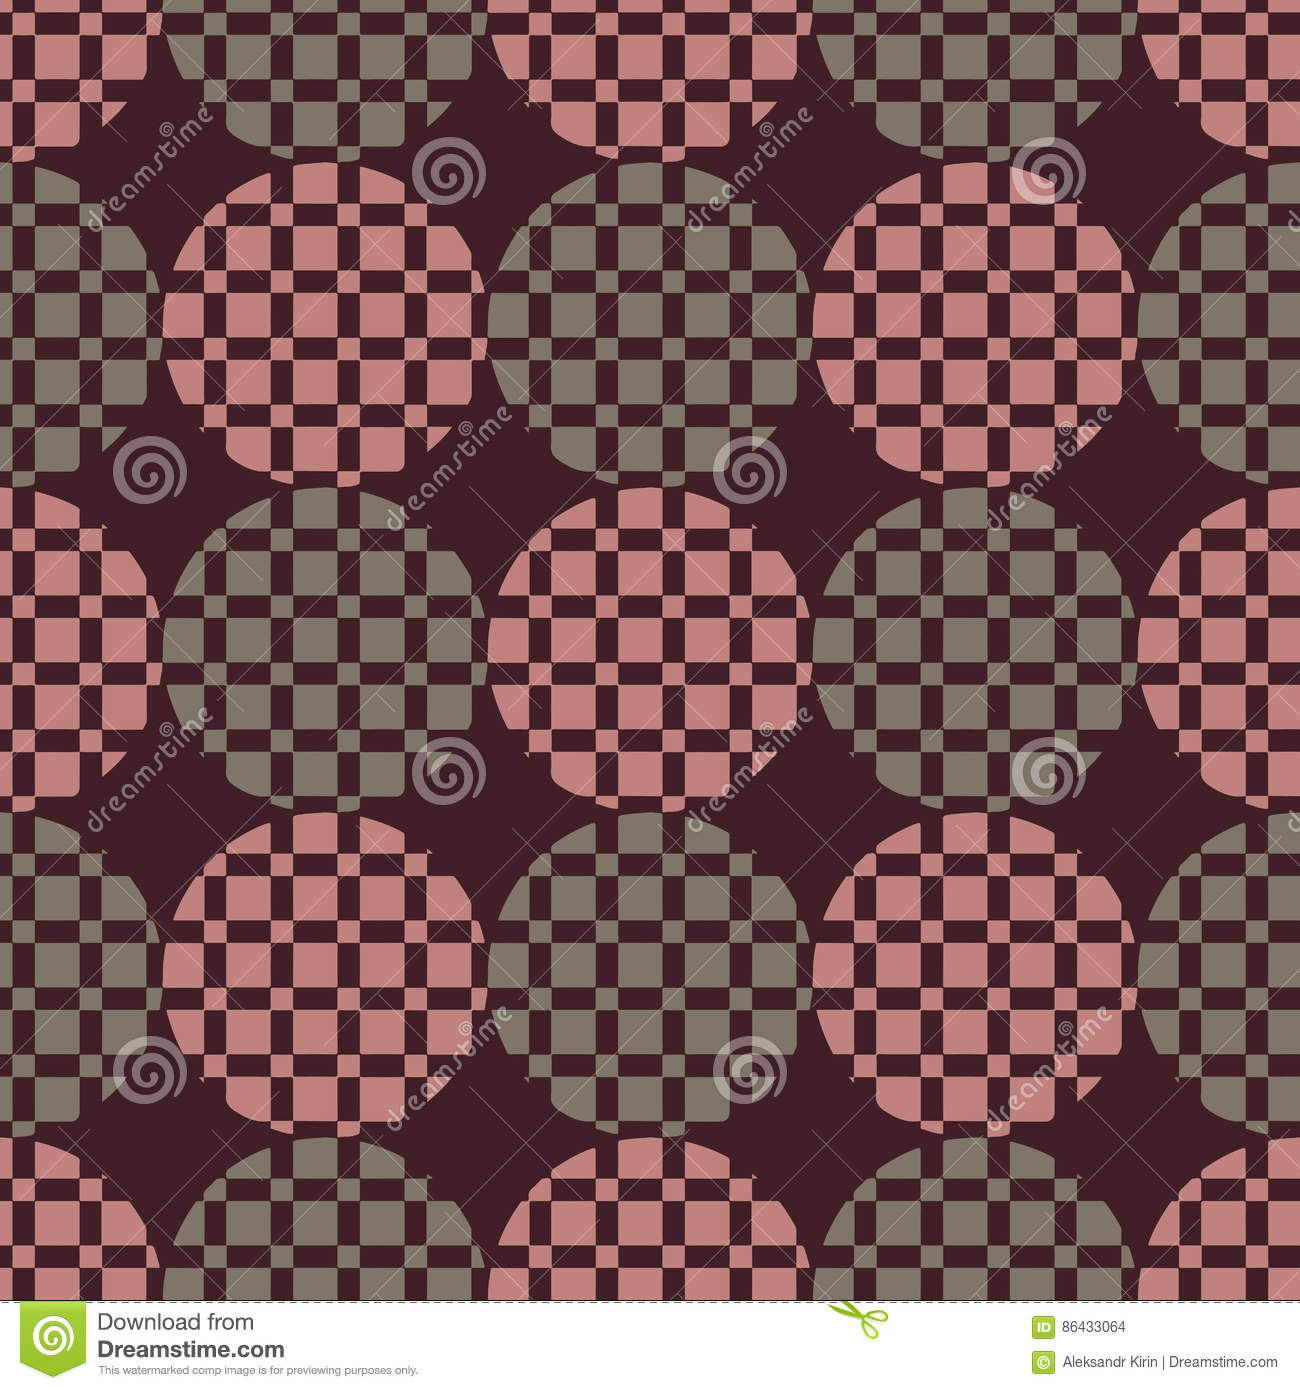 The pattern of circles and squares